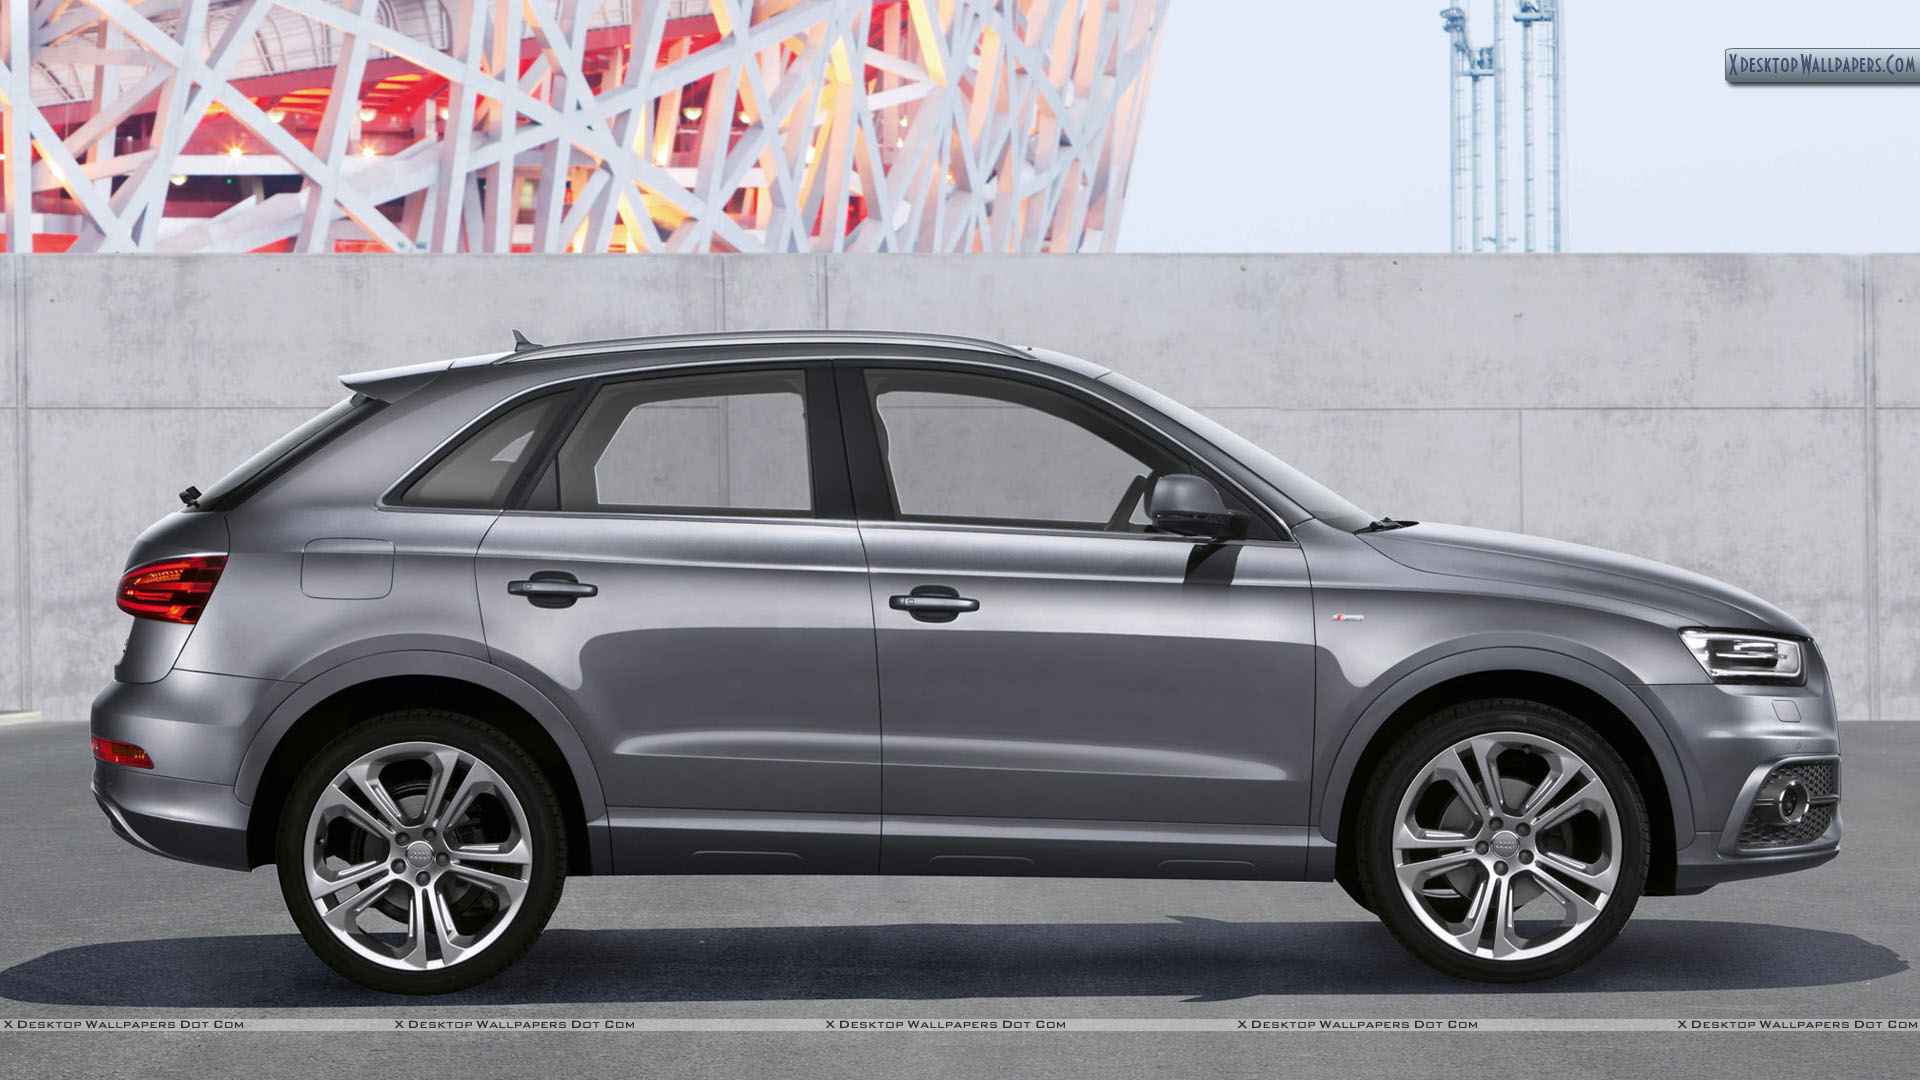 22012 audi q3 quattro s line metalic grey side pose. Black Bedroom Furniture Sets. Home Design Ideas